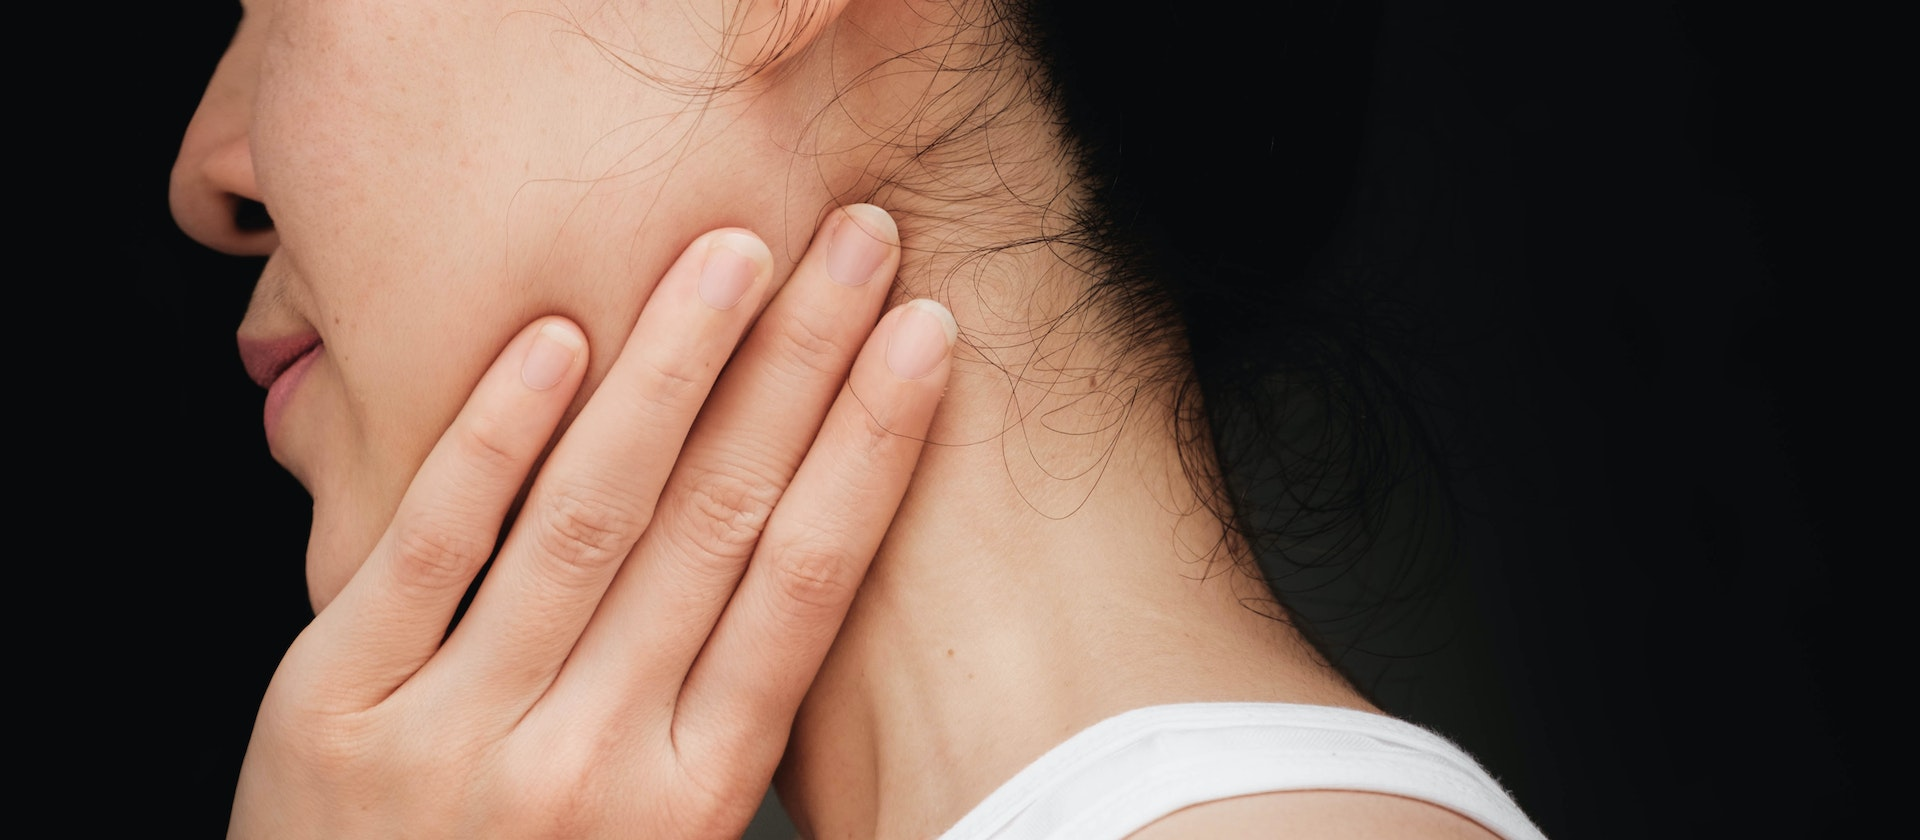 painful jaw lump symptoms causes common questions buoy